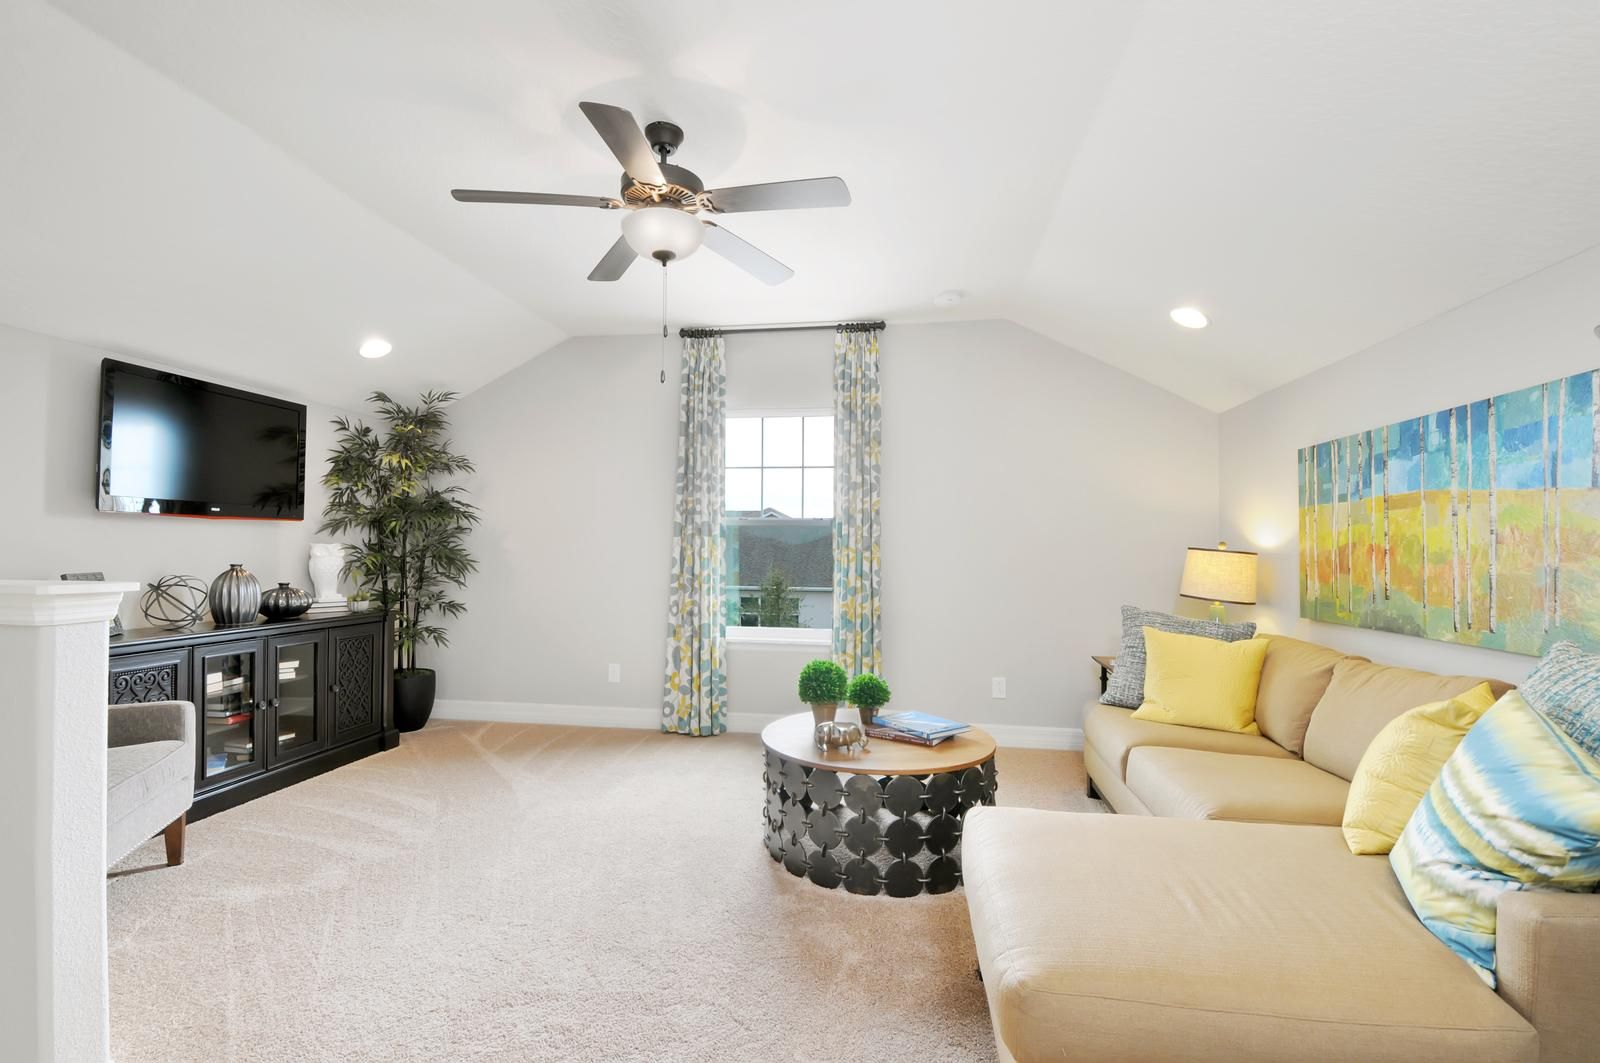 Our North Pointe Model Home Is A 4 Bedroom 3 Bath With Tons Of Upgrades An Added Bonus Room Cozy Loft Abundant Lighting And Furniture Package For